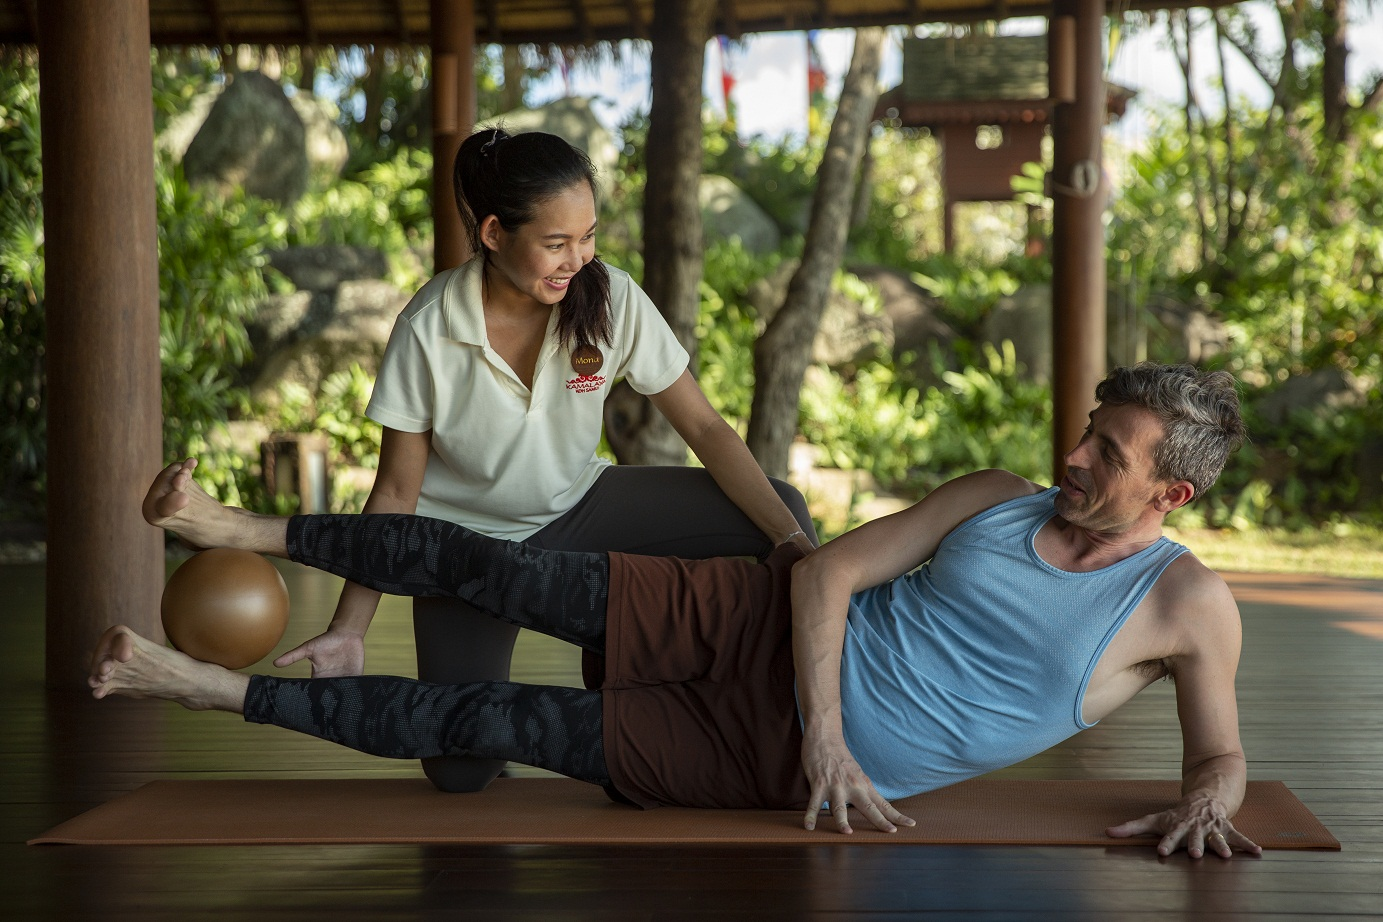 Straighten Up with Kamalaya's Postural Realignment Wellness Program